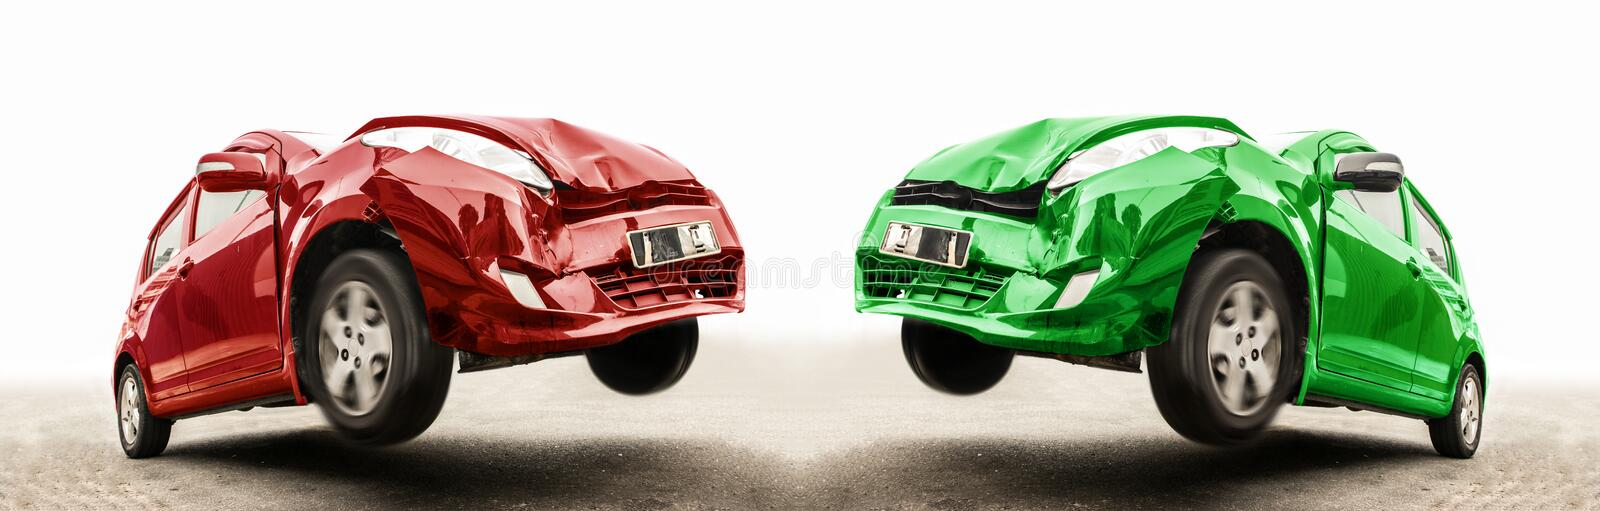 Accident of two cars at a front crash on the road. royalty free stock image